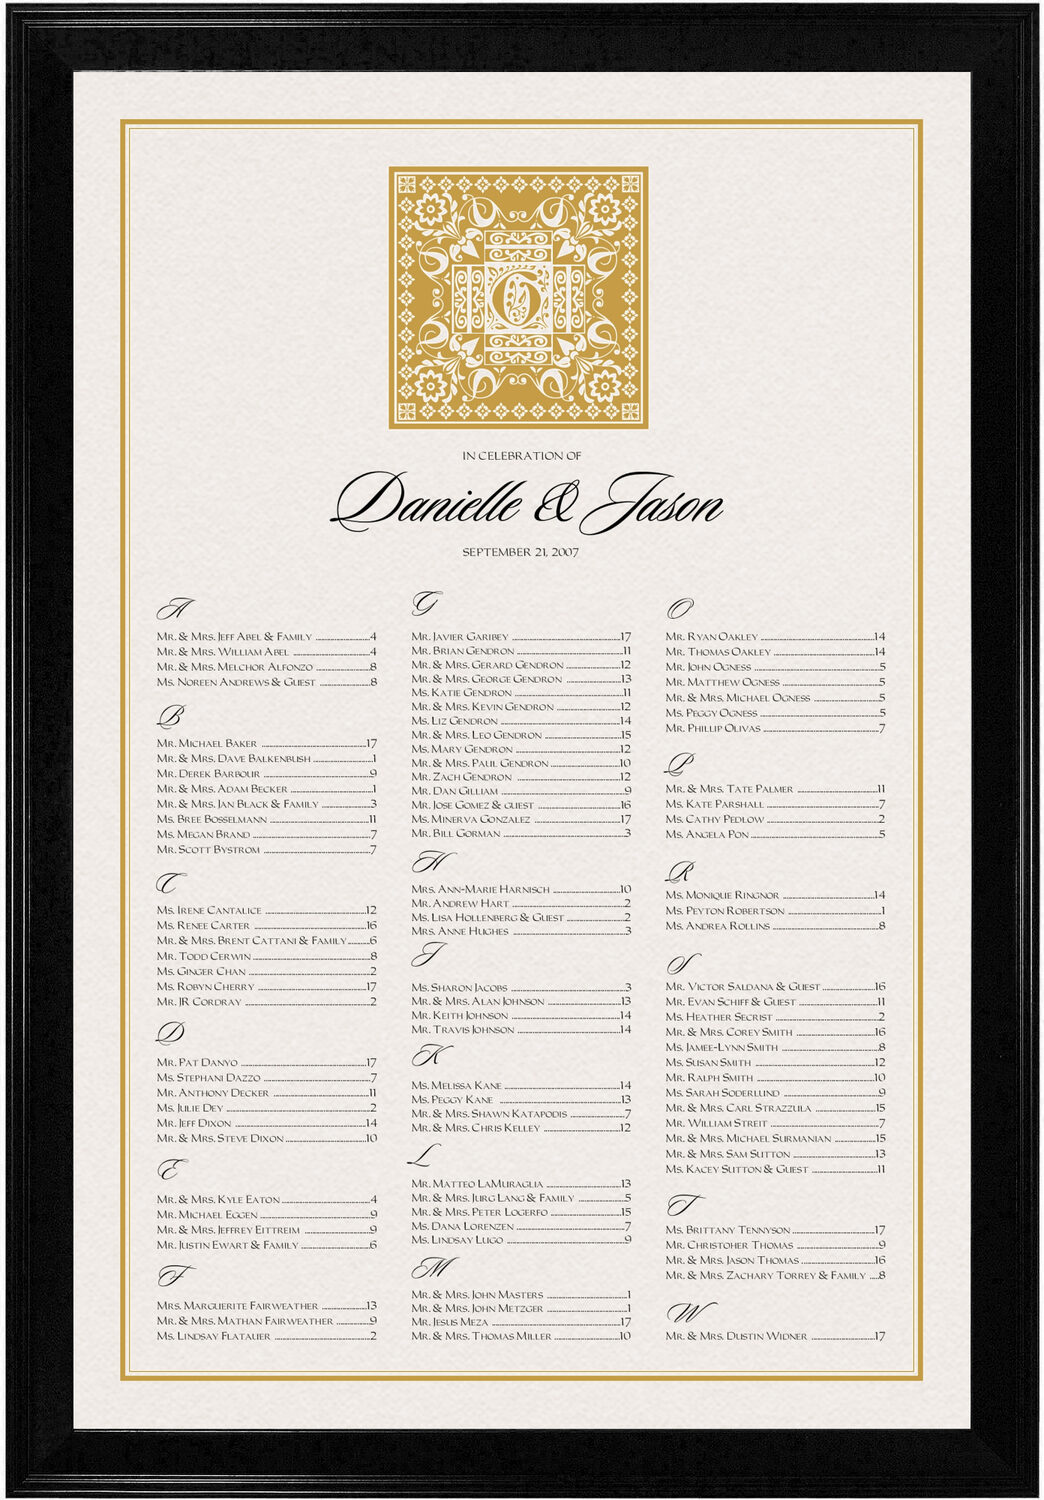 Photograph of Floral Paisley Pattern Seating Charts